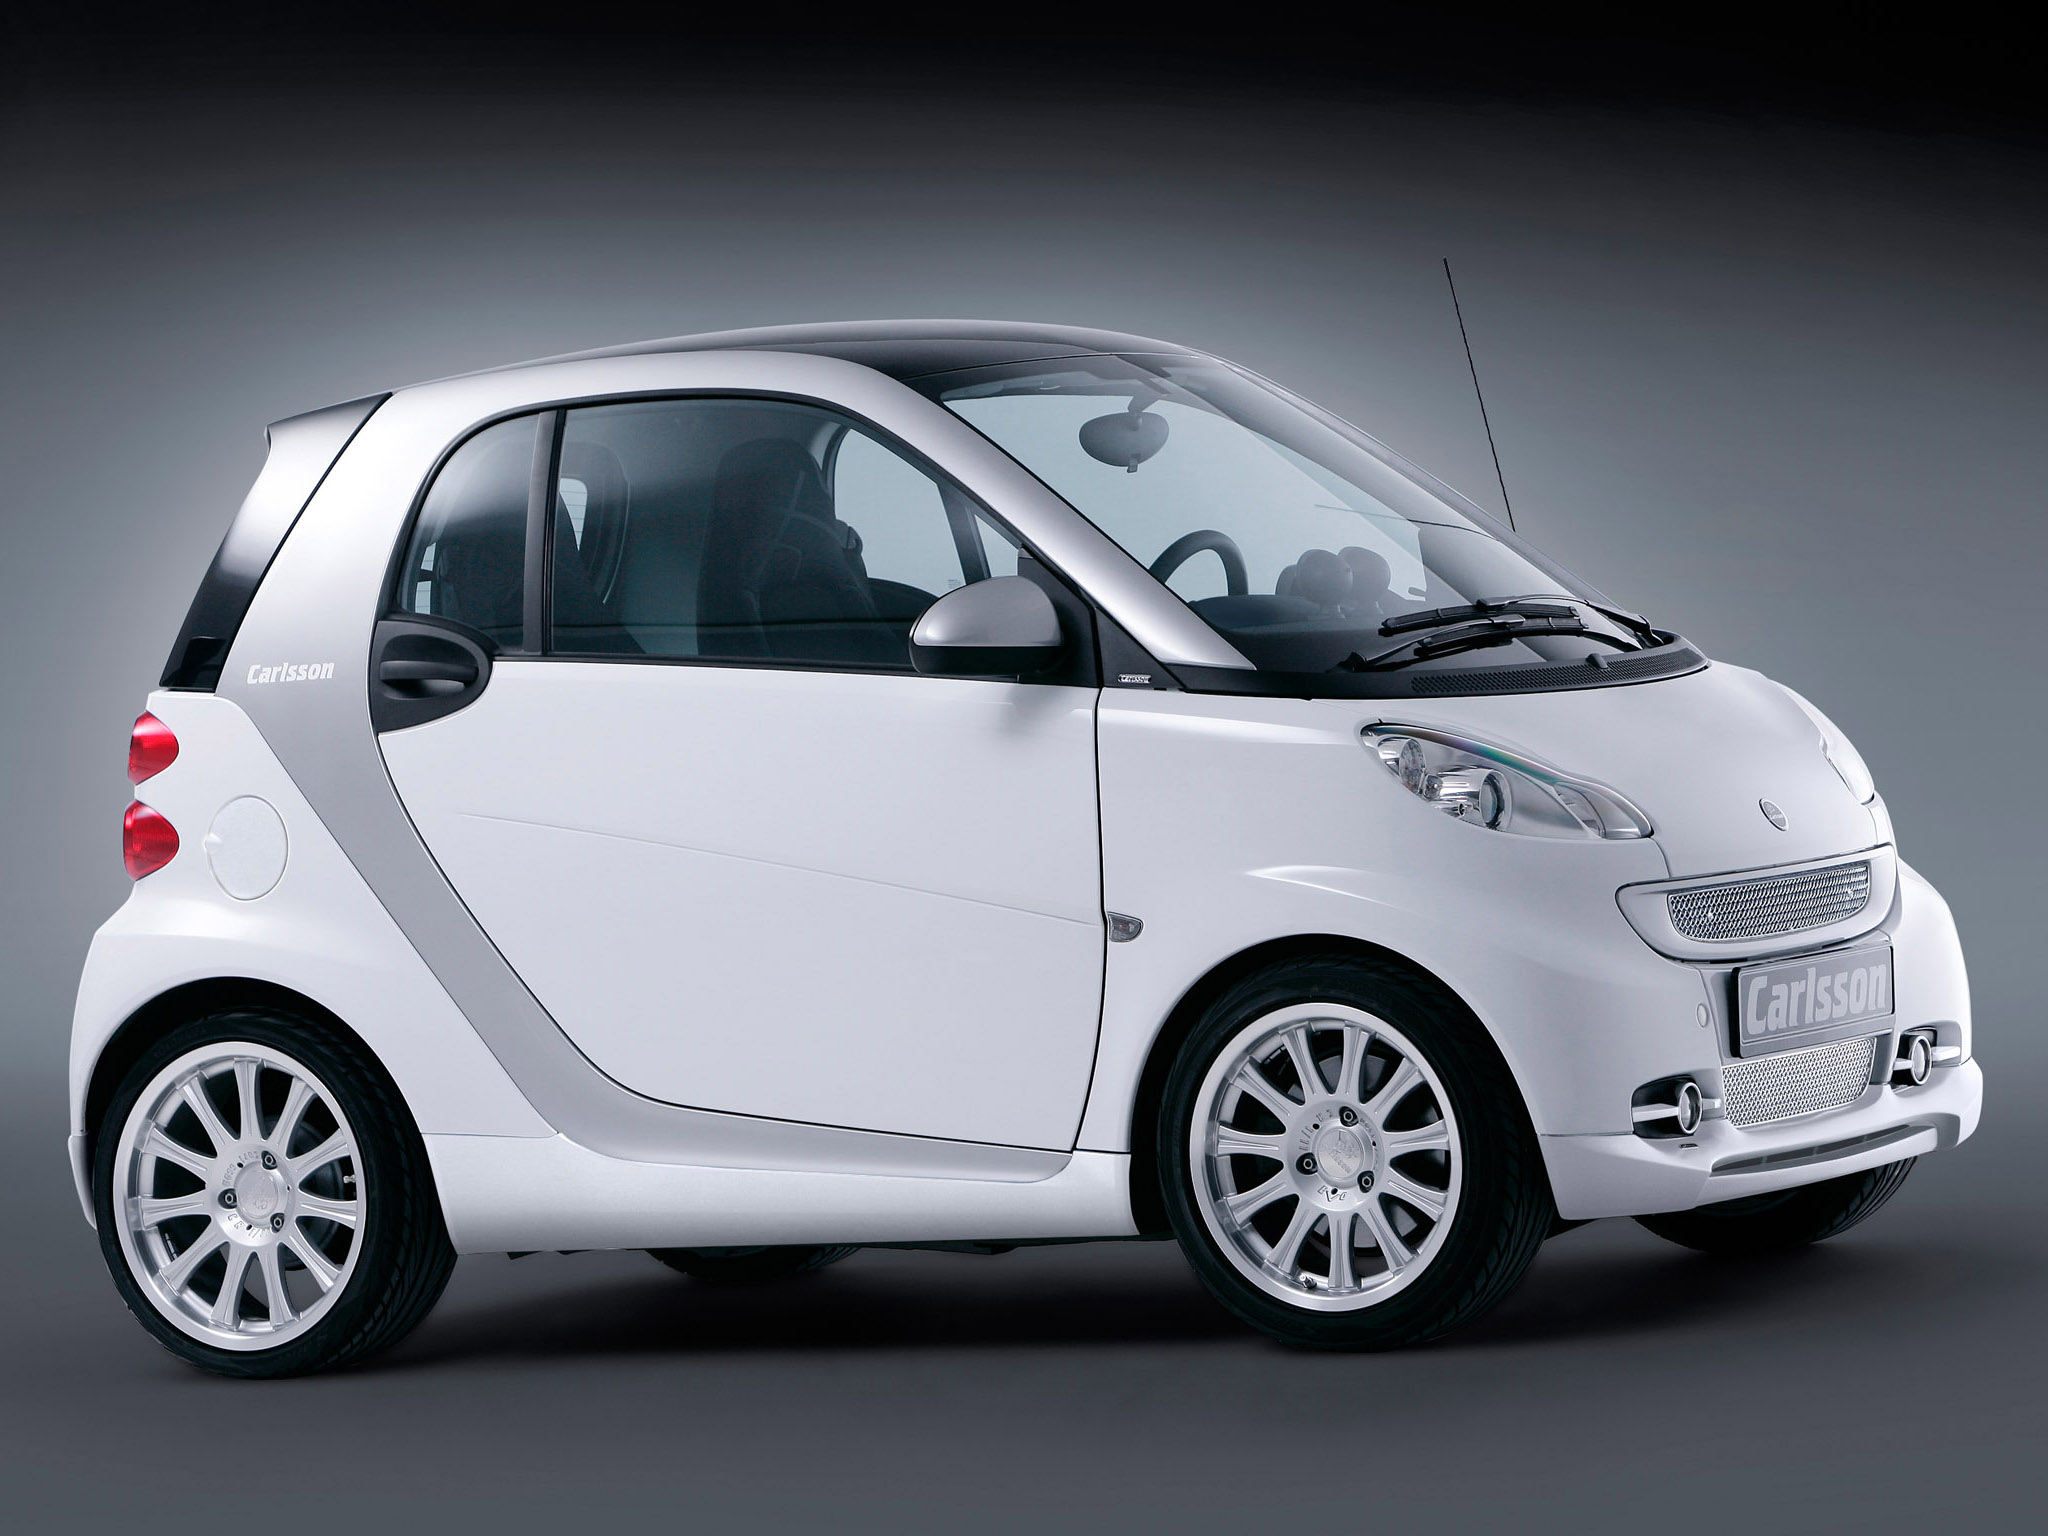 Carlsson Smart Fortwo 2012 Photo 06 Car 1992 Honda Civic Headlight Switch Wiring Diagram Download Full Size 2048 1536 Pixels